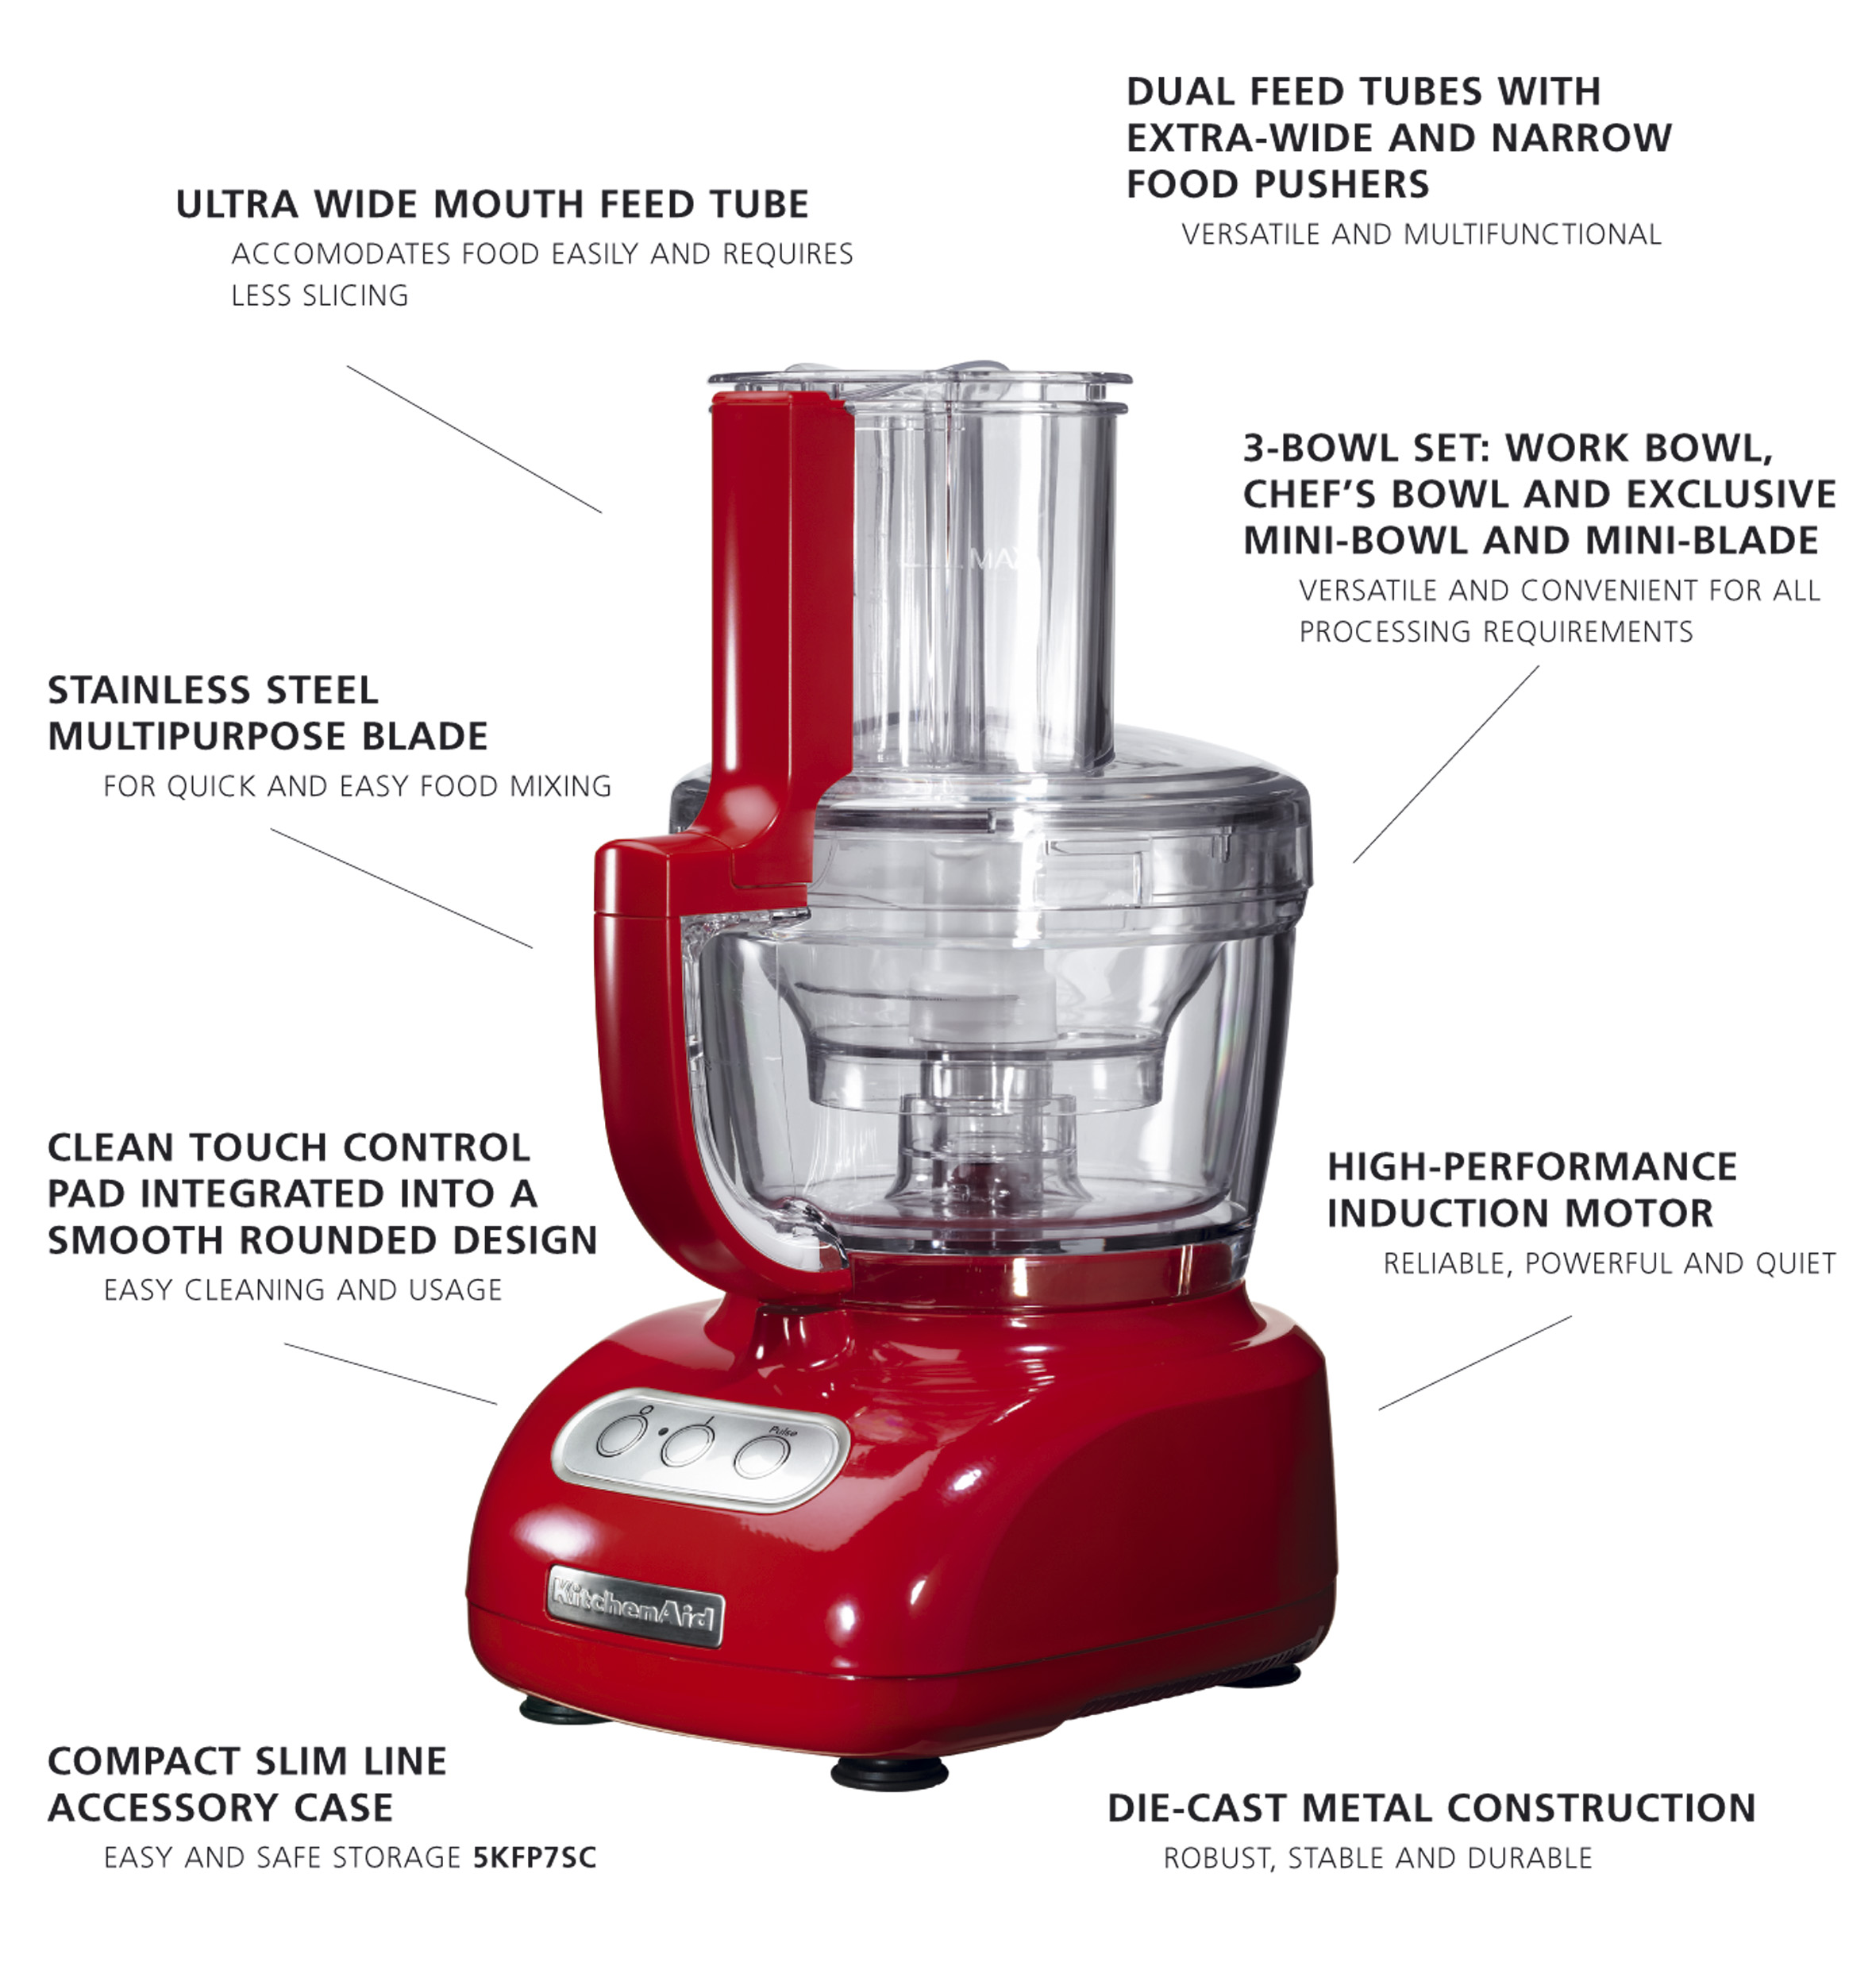 Amazing KitchenAid Food Processor 2363 x 2481 · 666 kB · jpeg